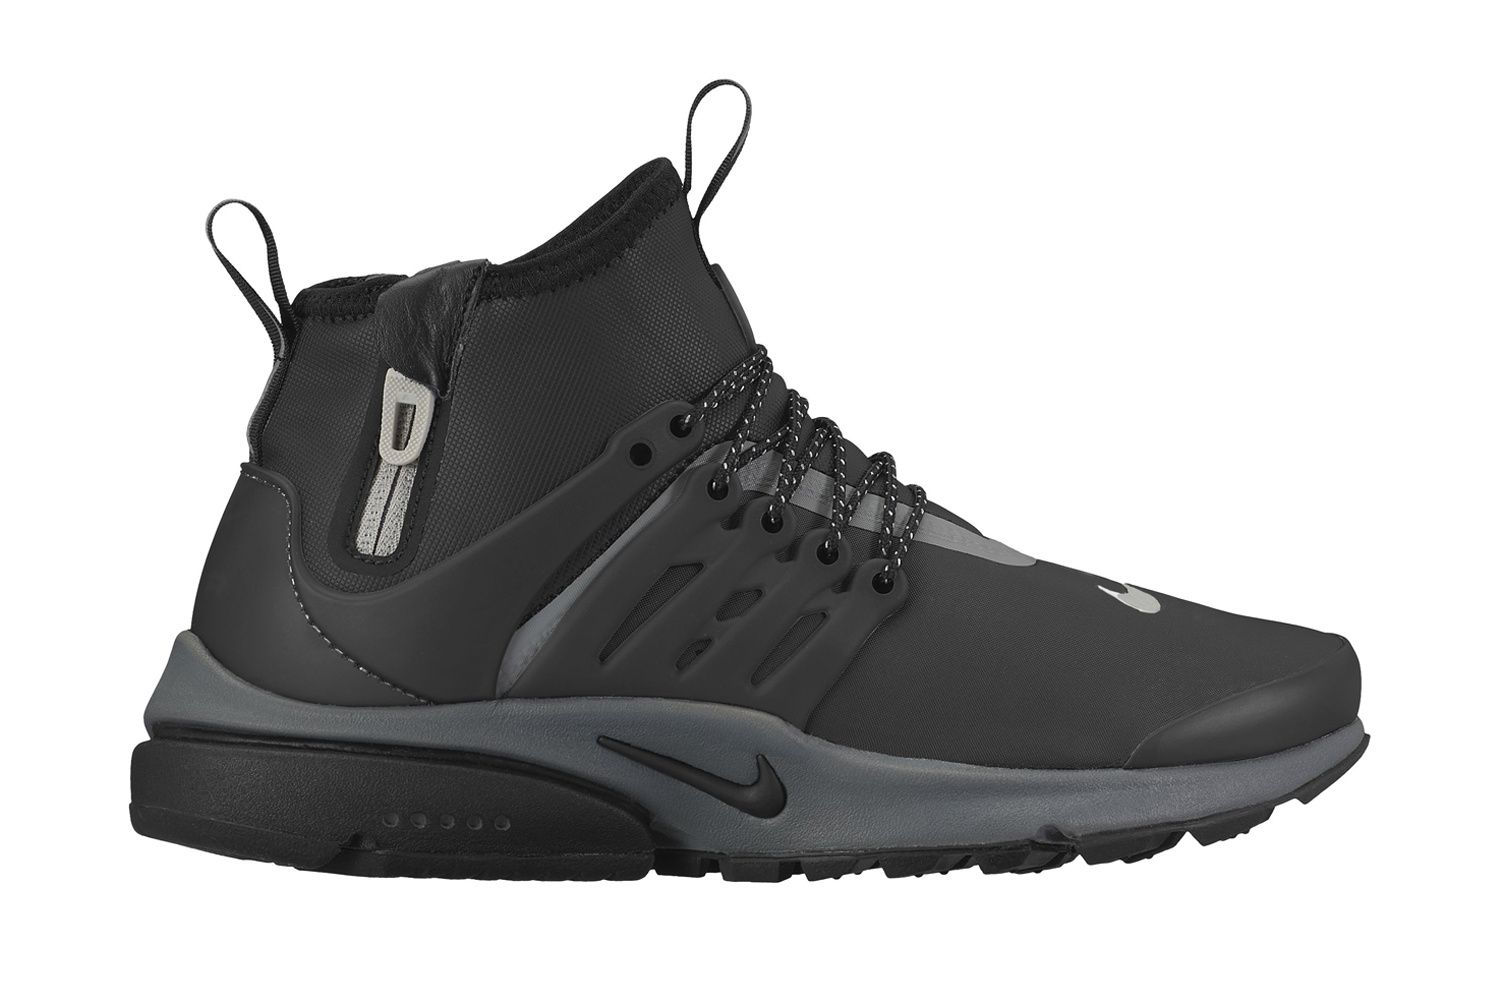 A First Look At The Nike Air Presto Mid Utility With Images Nike Air Presto Sneaker Magazine Nike Air